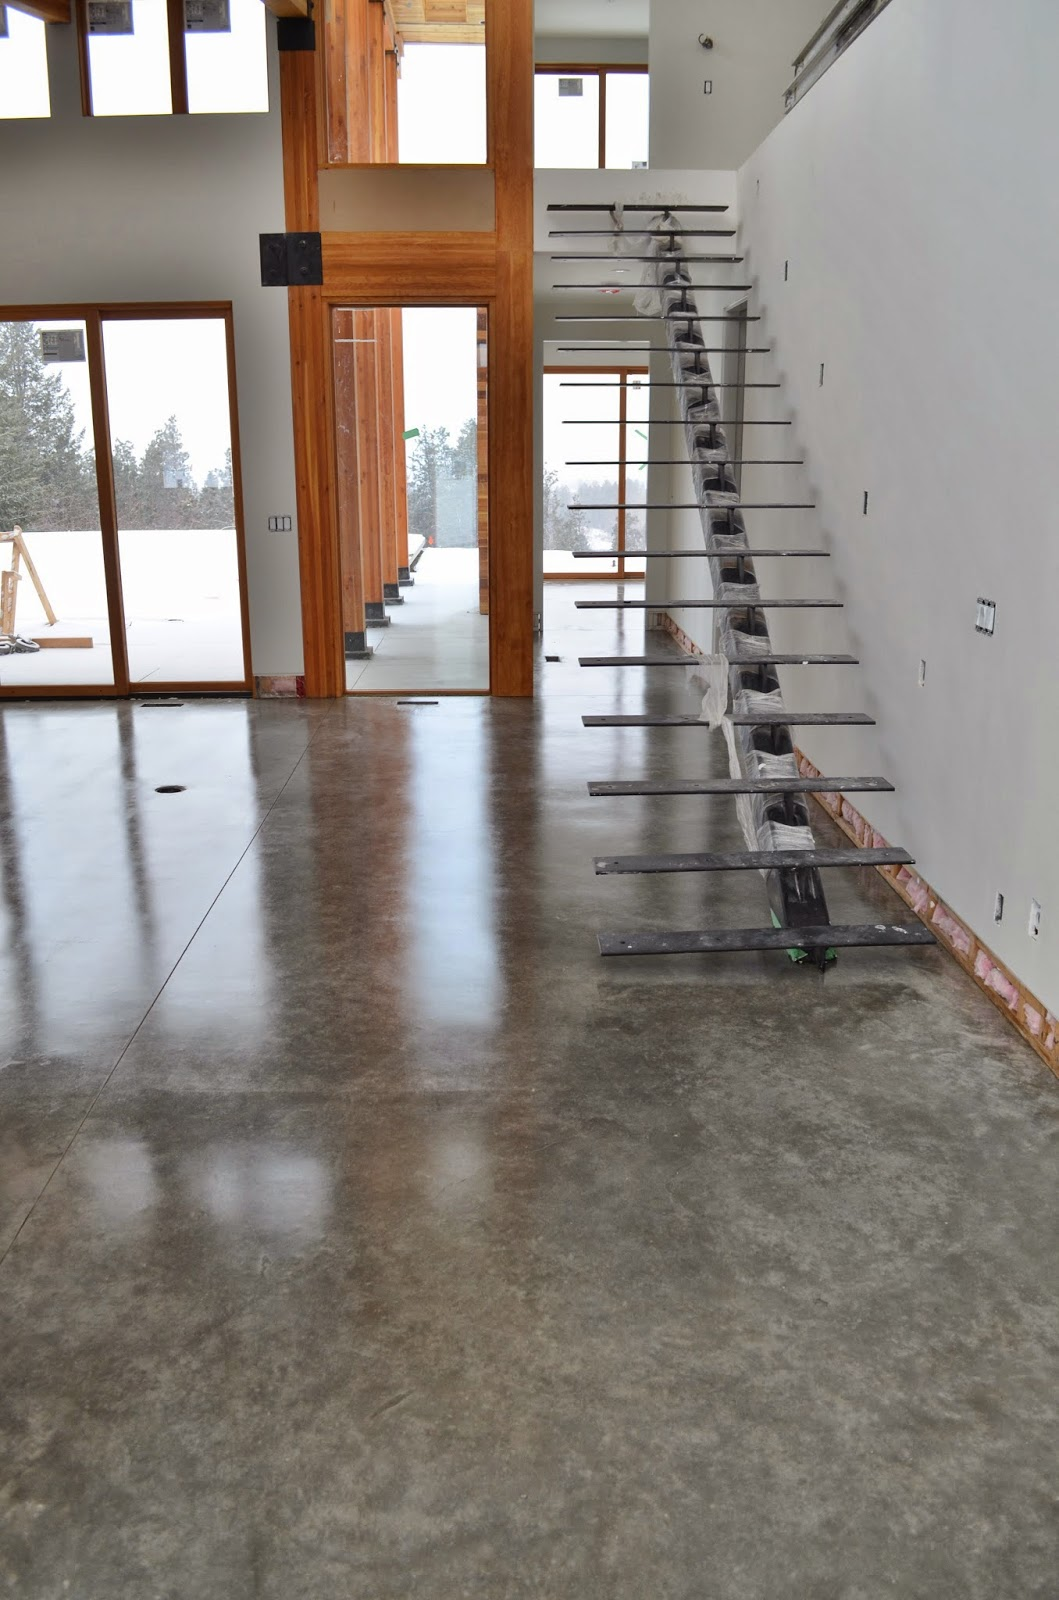 Mode concrete natural concrete floors look amazing in for New home flooring